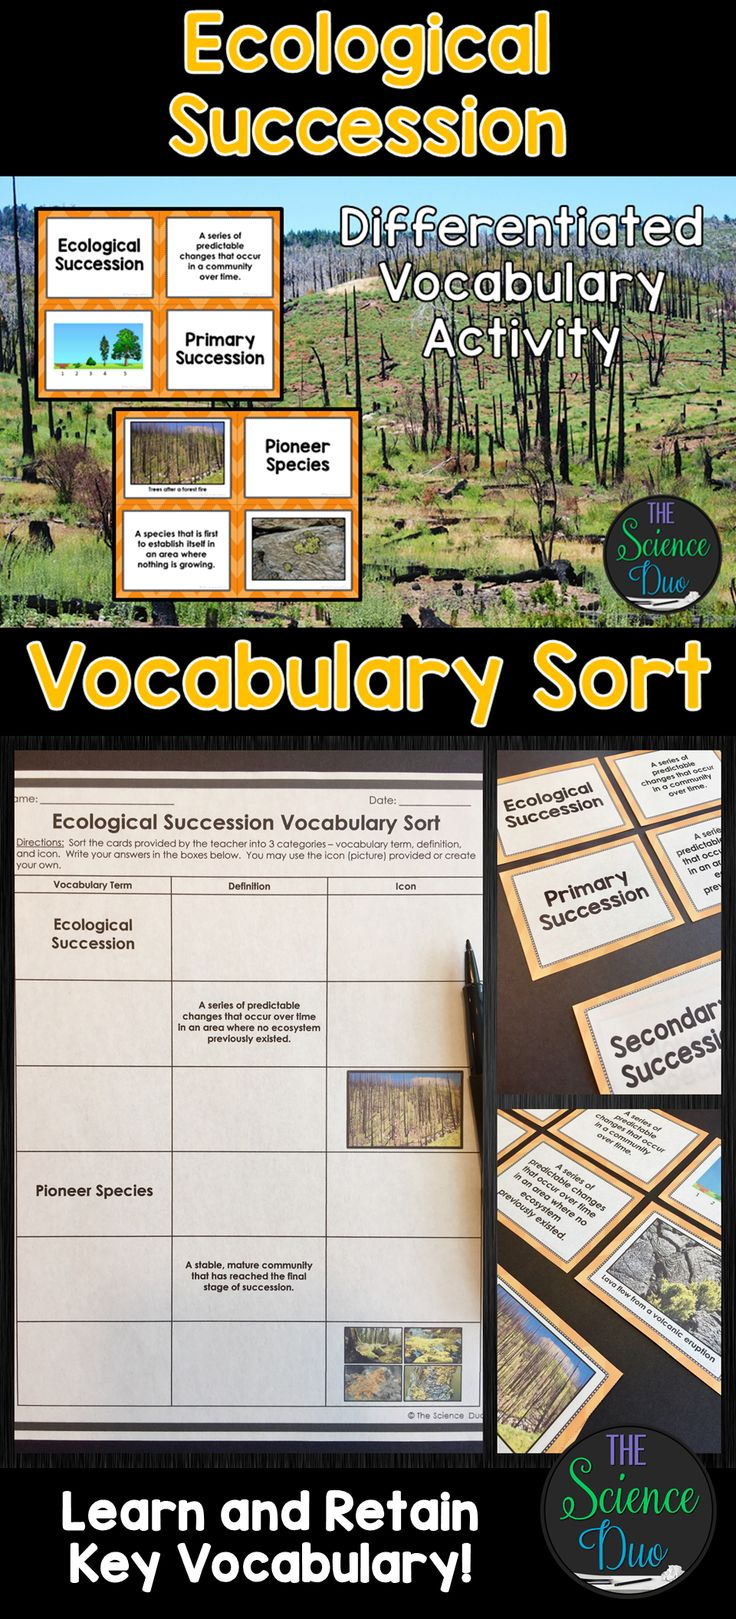 Help Your Students Grasp And Retain Key Ecological Succession Vocabulary This Resource Includes Ecological Succession Biology Teacher Environmental Education